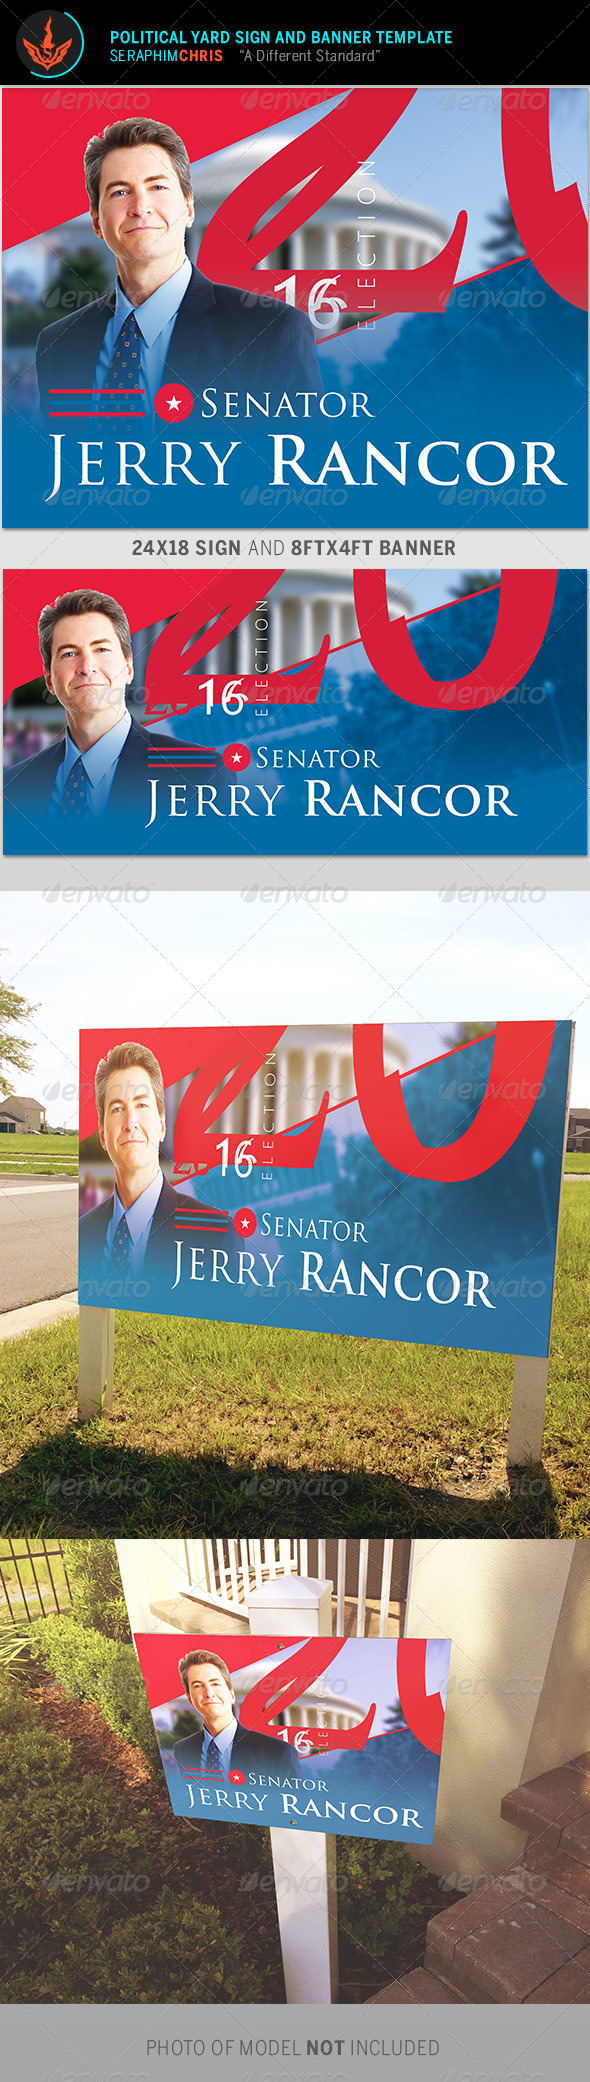 GraphicRiver Political Yard Sign and Banner Template 8753568